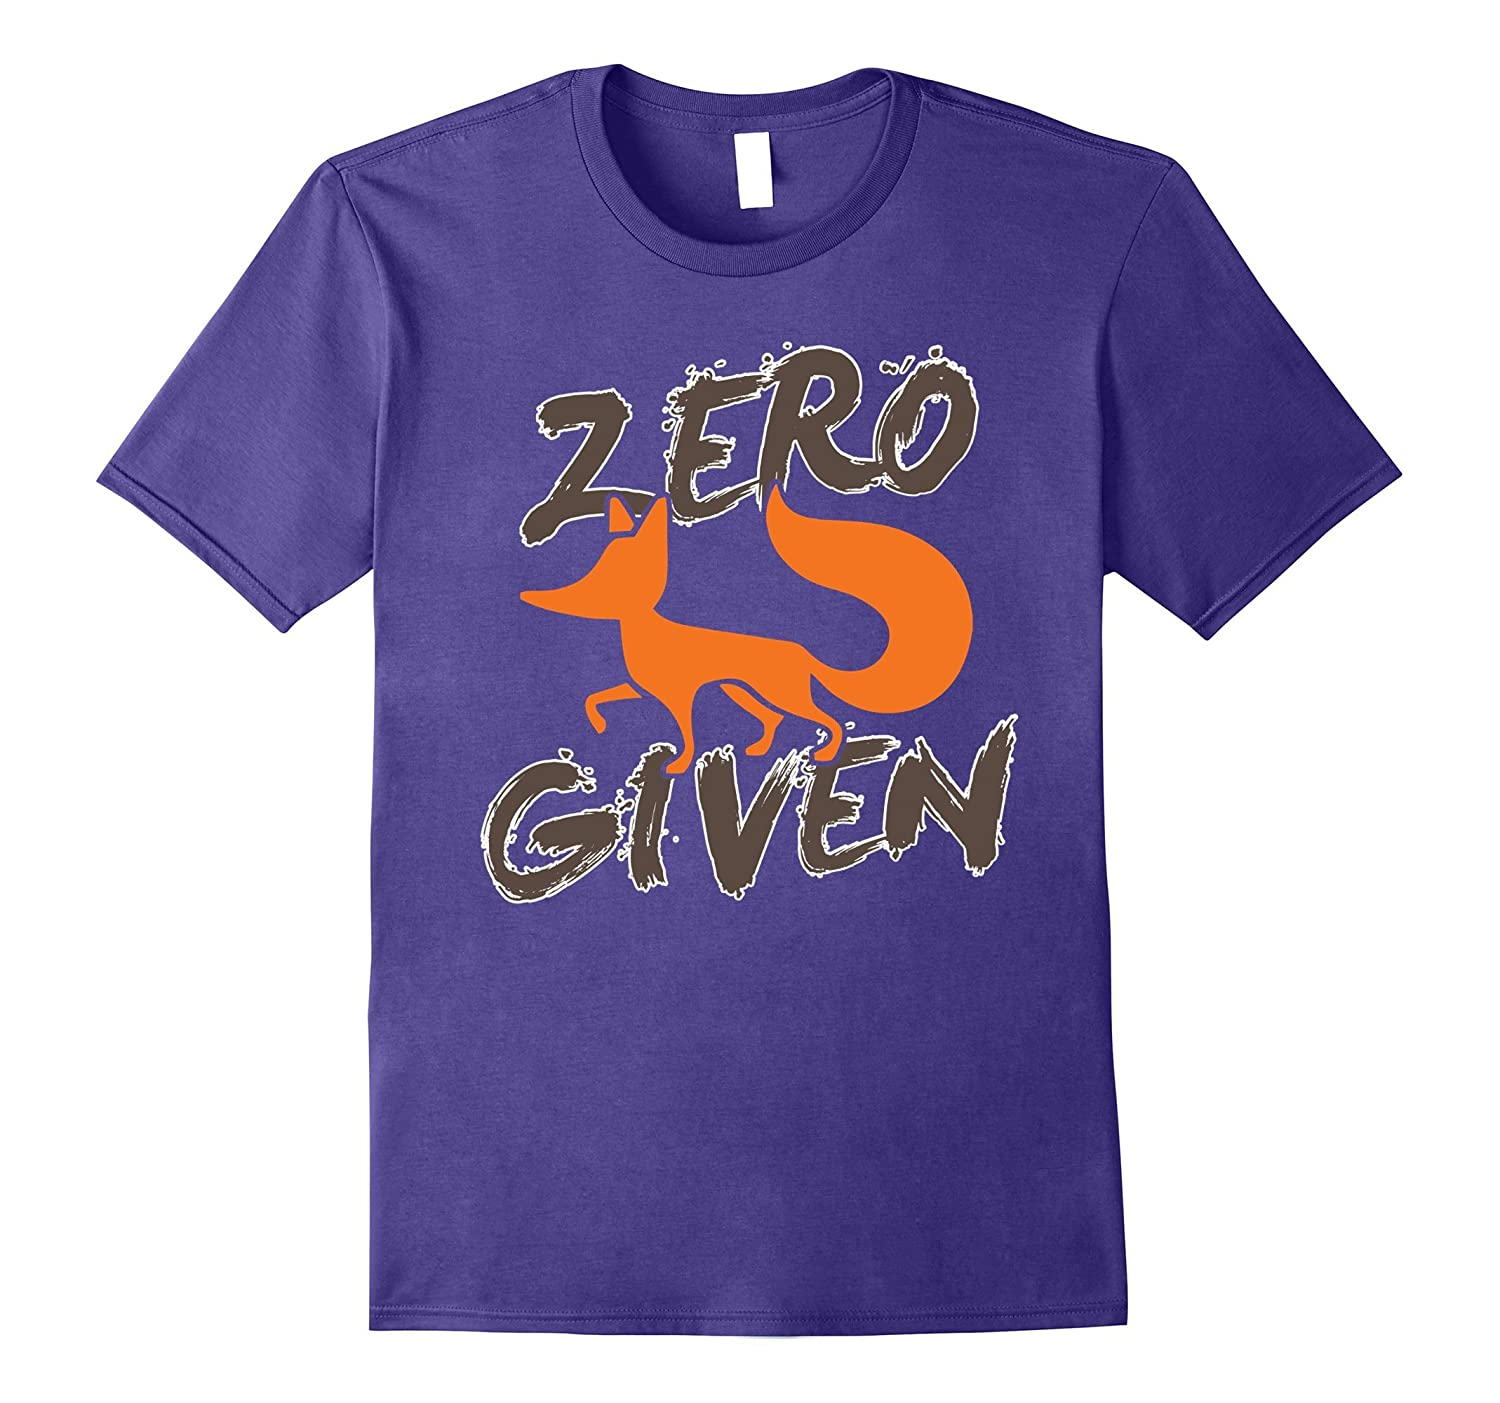 Zero Fox Given T-Shirt Fox Lover Gifts Novelty Men Women-TH